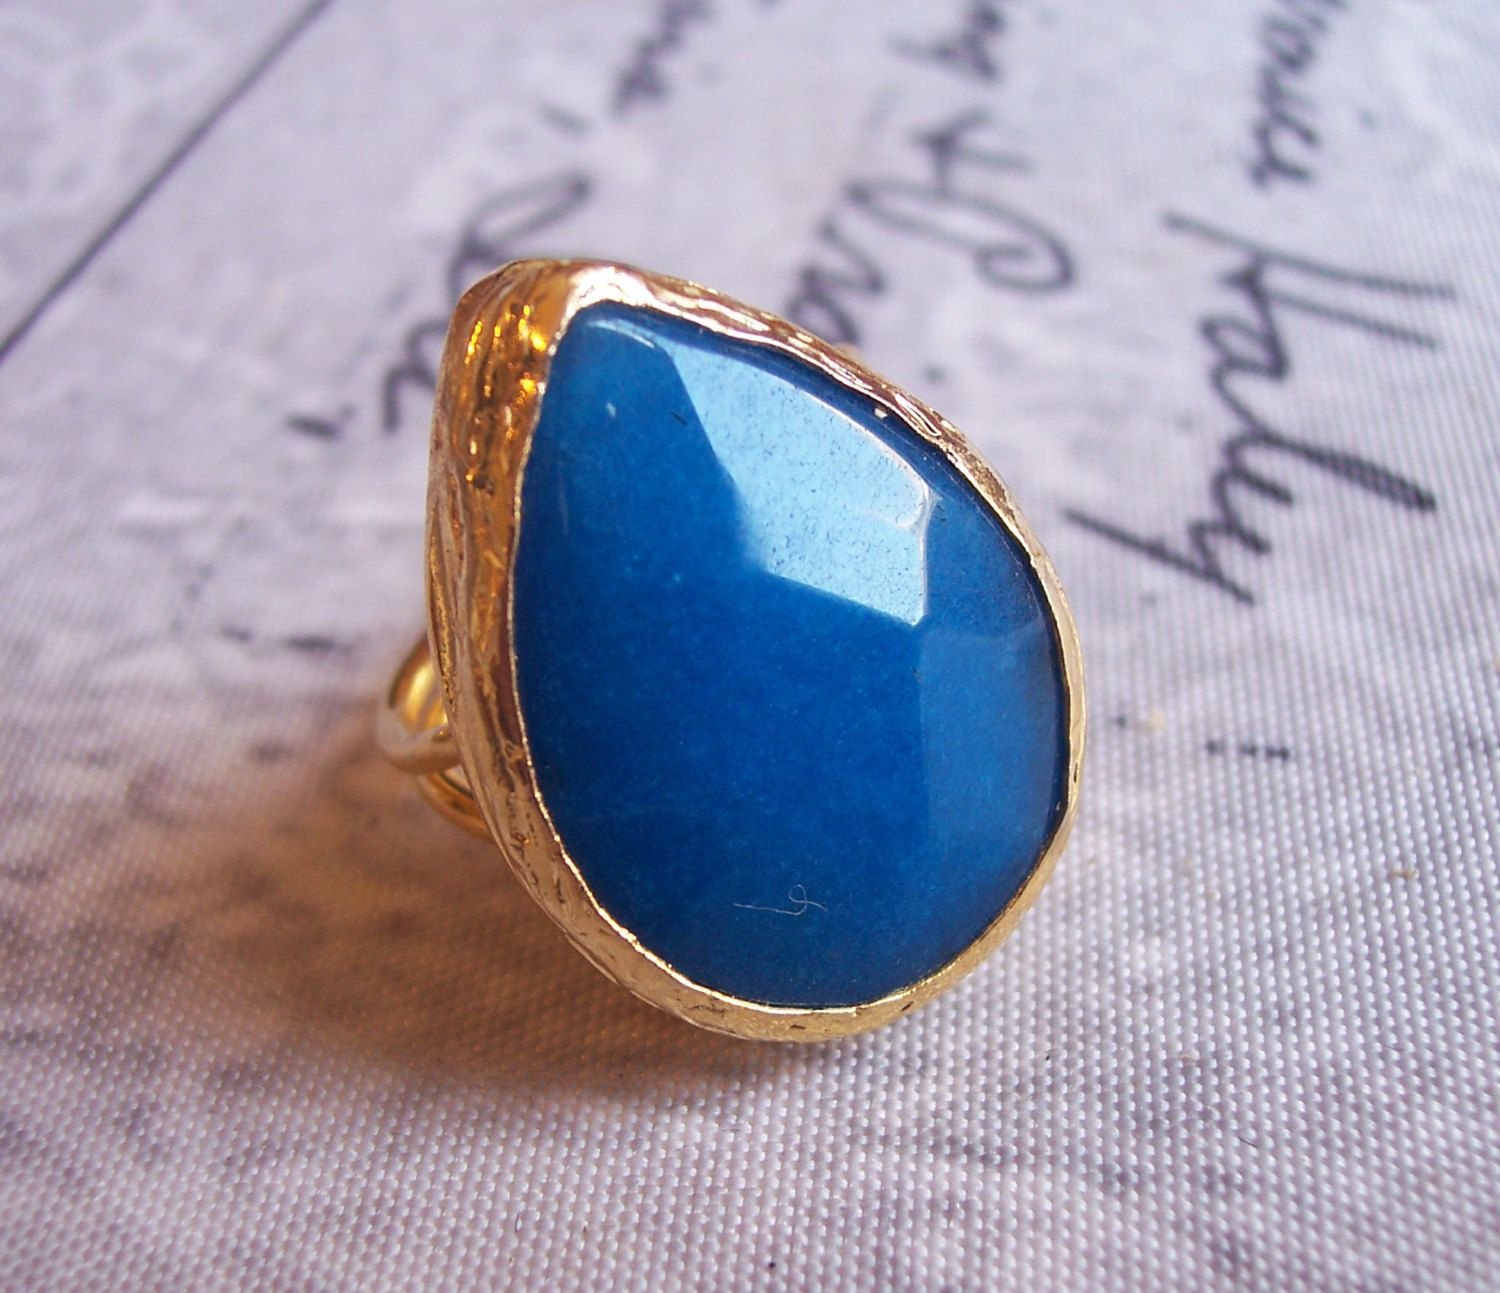 Handmade gold plated ring with blue tear drop agate by GardenOfLinda on Etsy